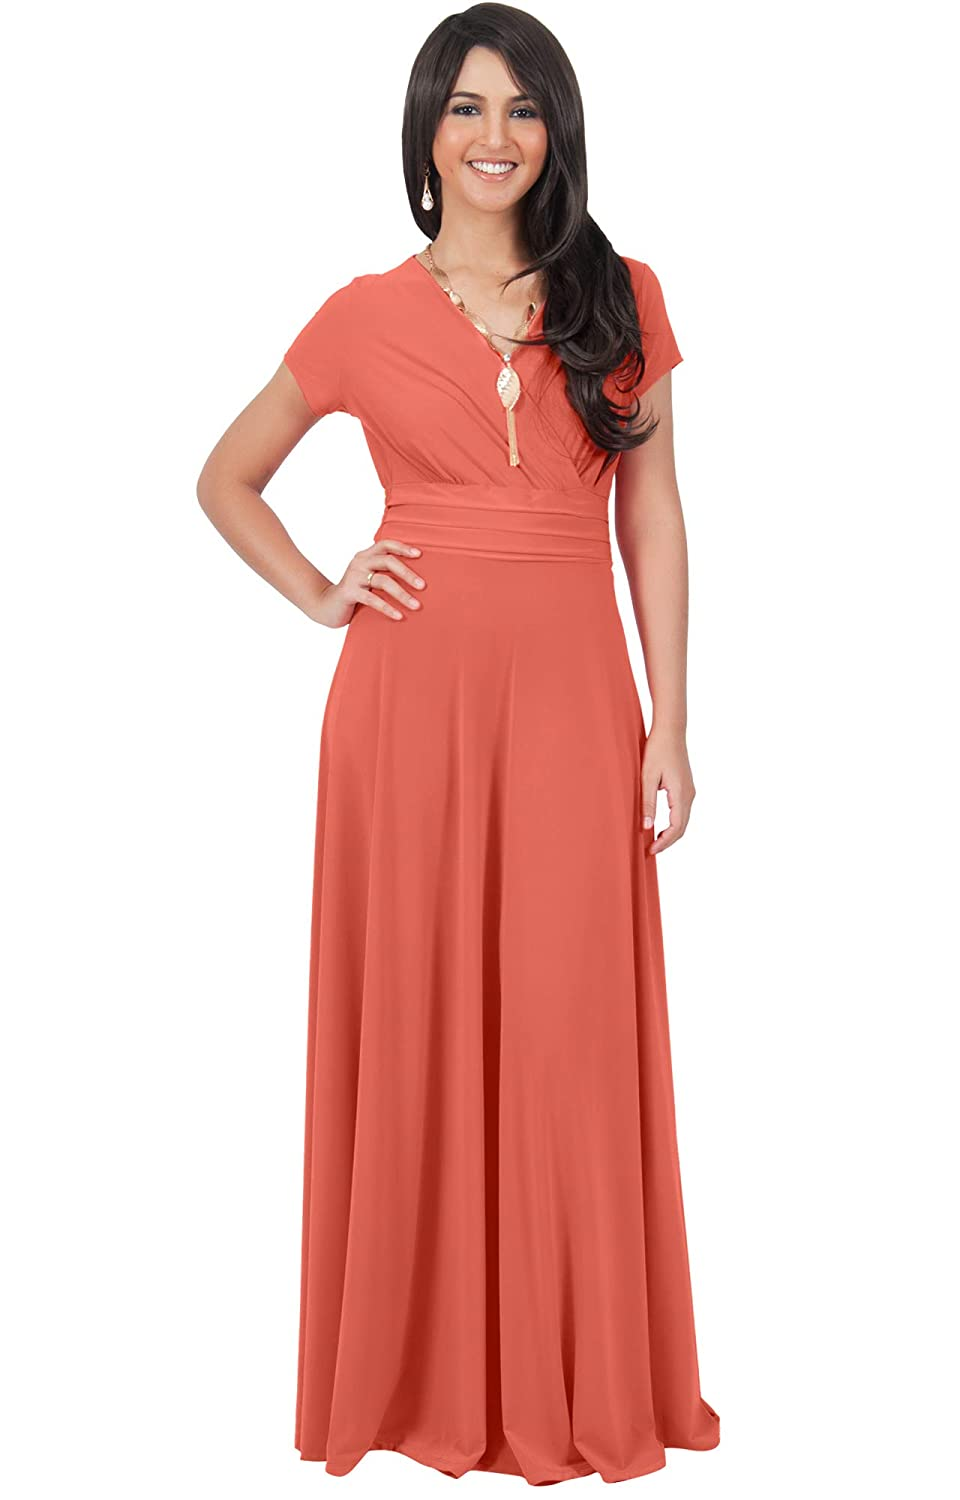 Koh Koh Petite Womens Long Cap Short Sleeve V-Neck Flowy Cocktail Slimming Summer Sexy Casual Formal Sun Sundress Work Cute Gown Gowns Maxi Dress Dresses, ...